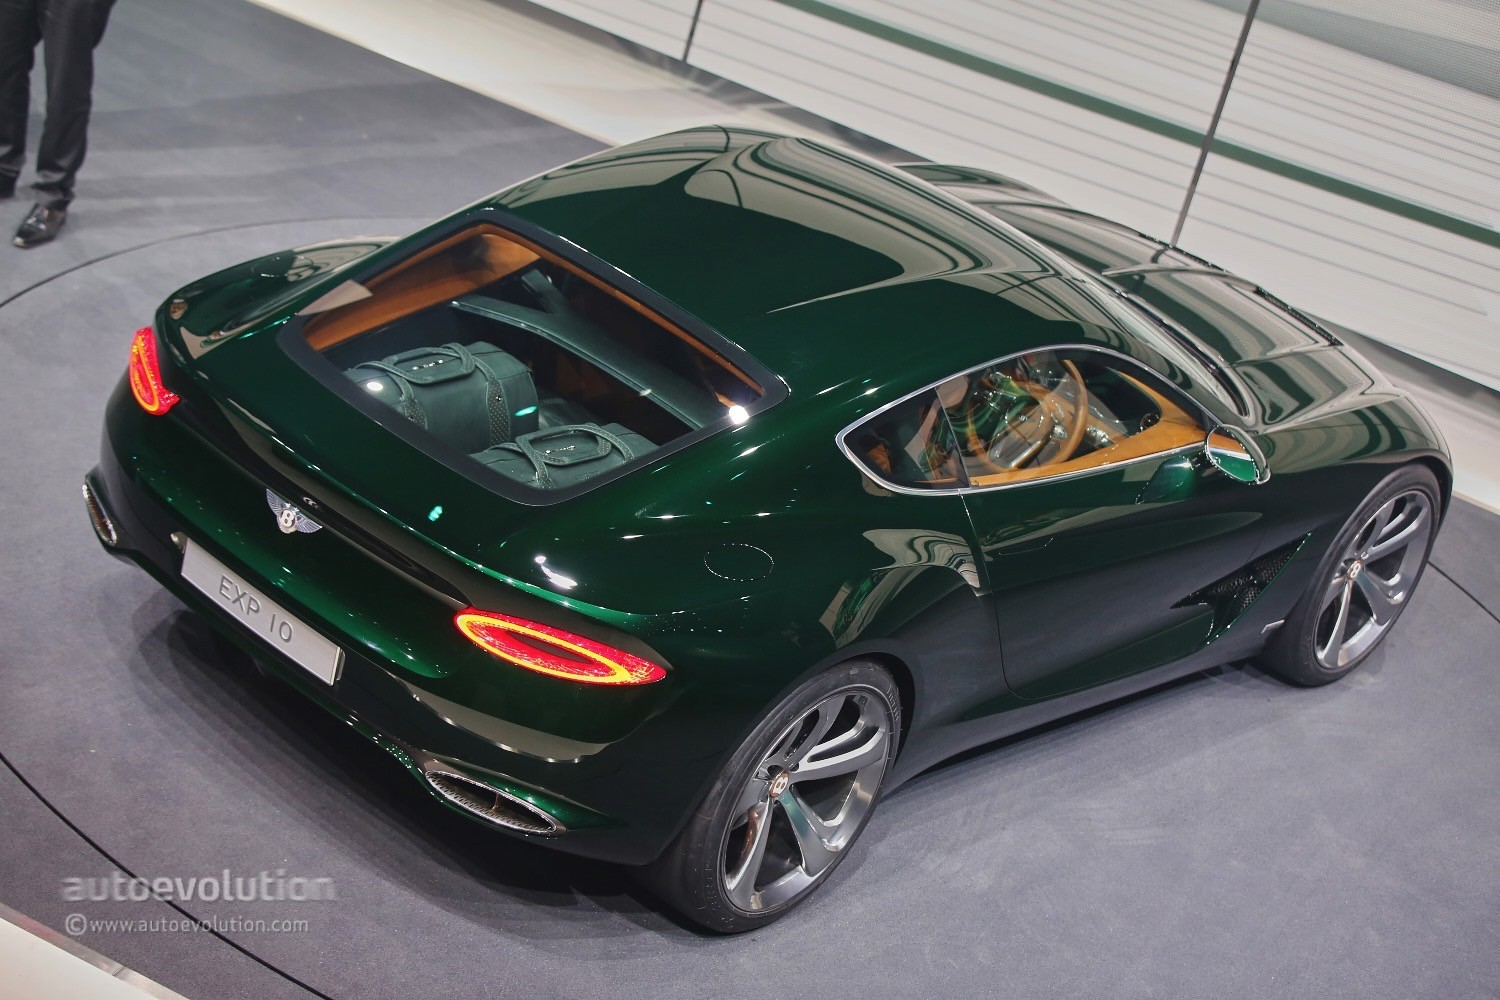 Bentley Exp 10 >> Julius Bentley Exp 10 Speed 6 Concept